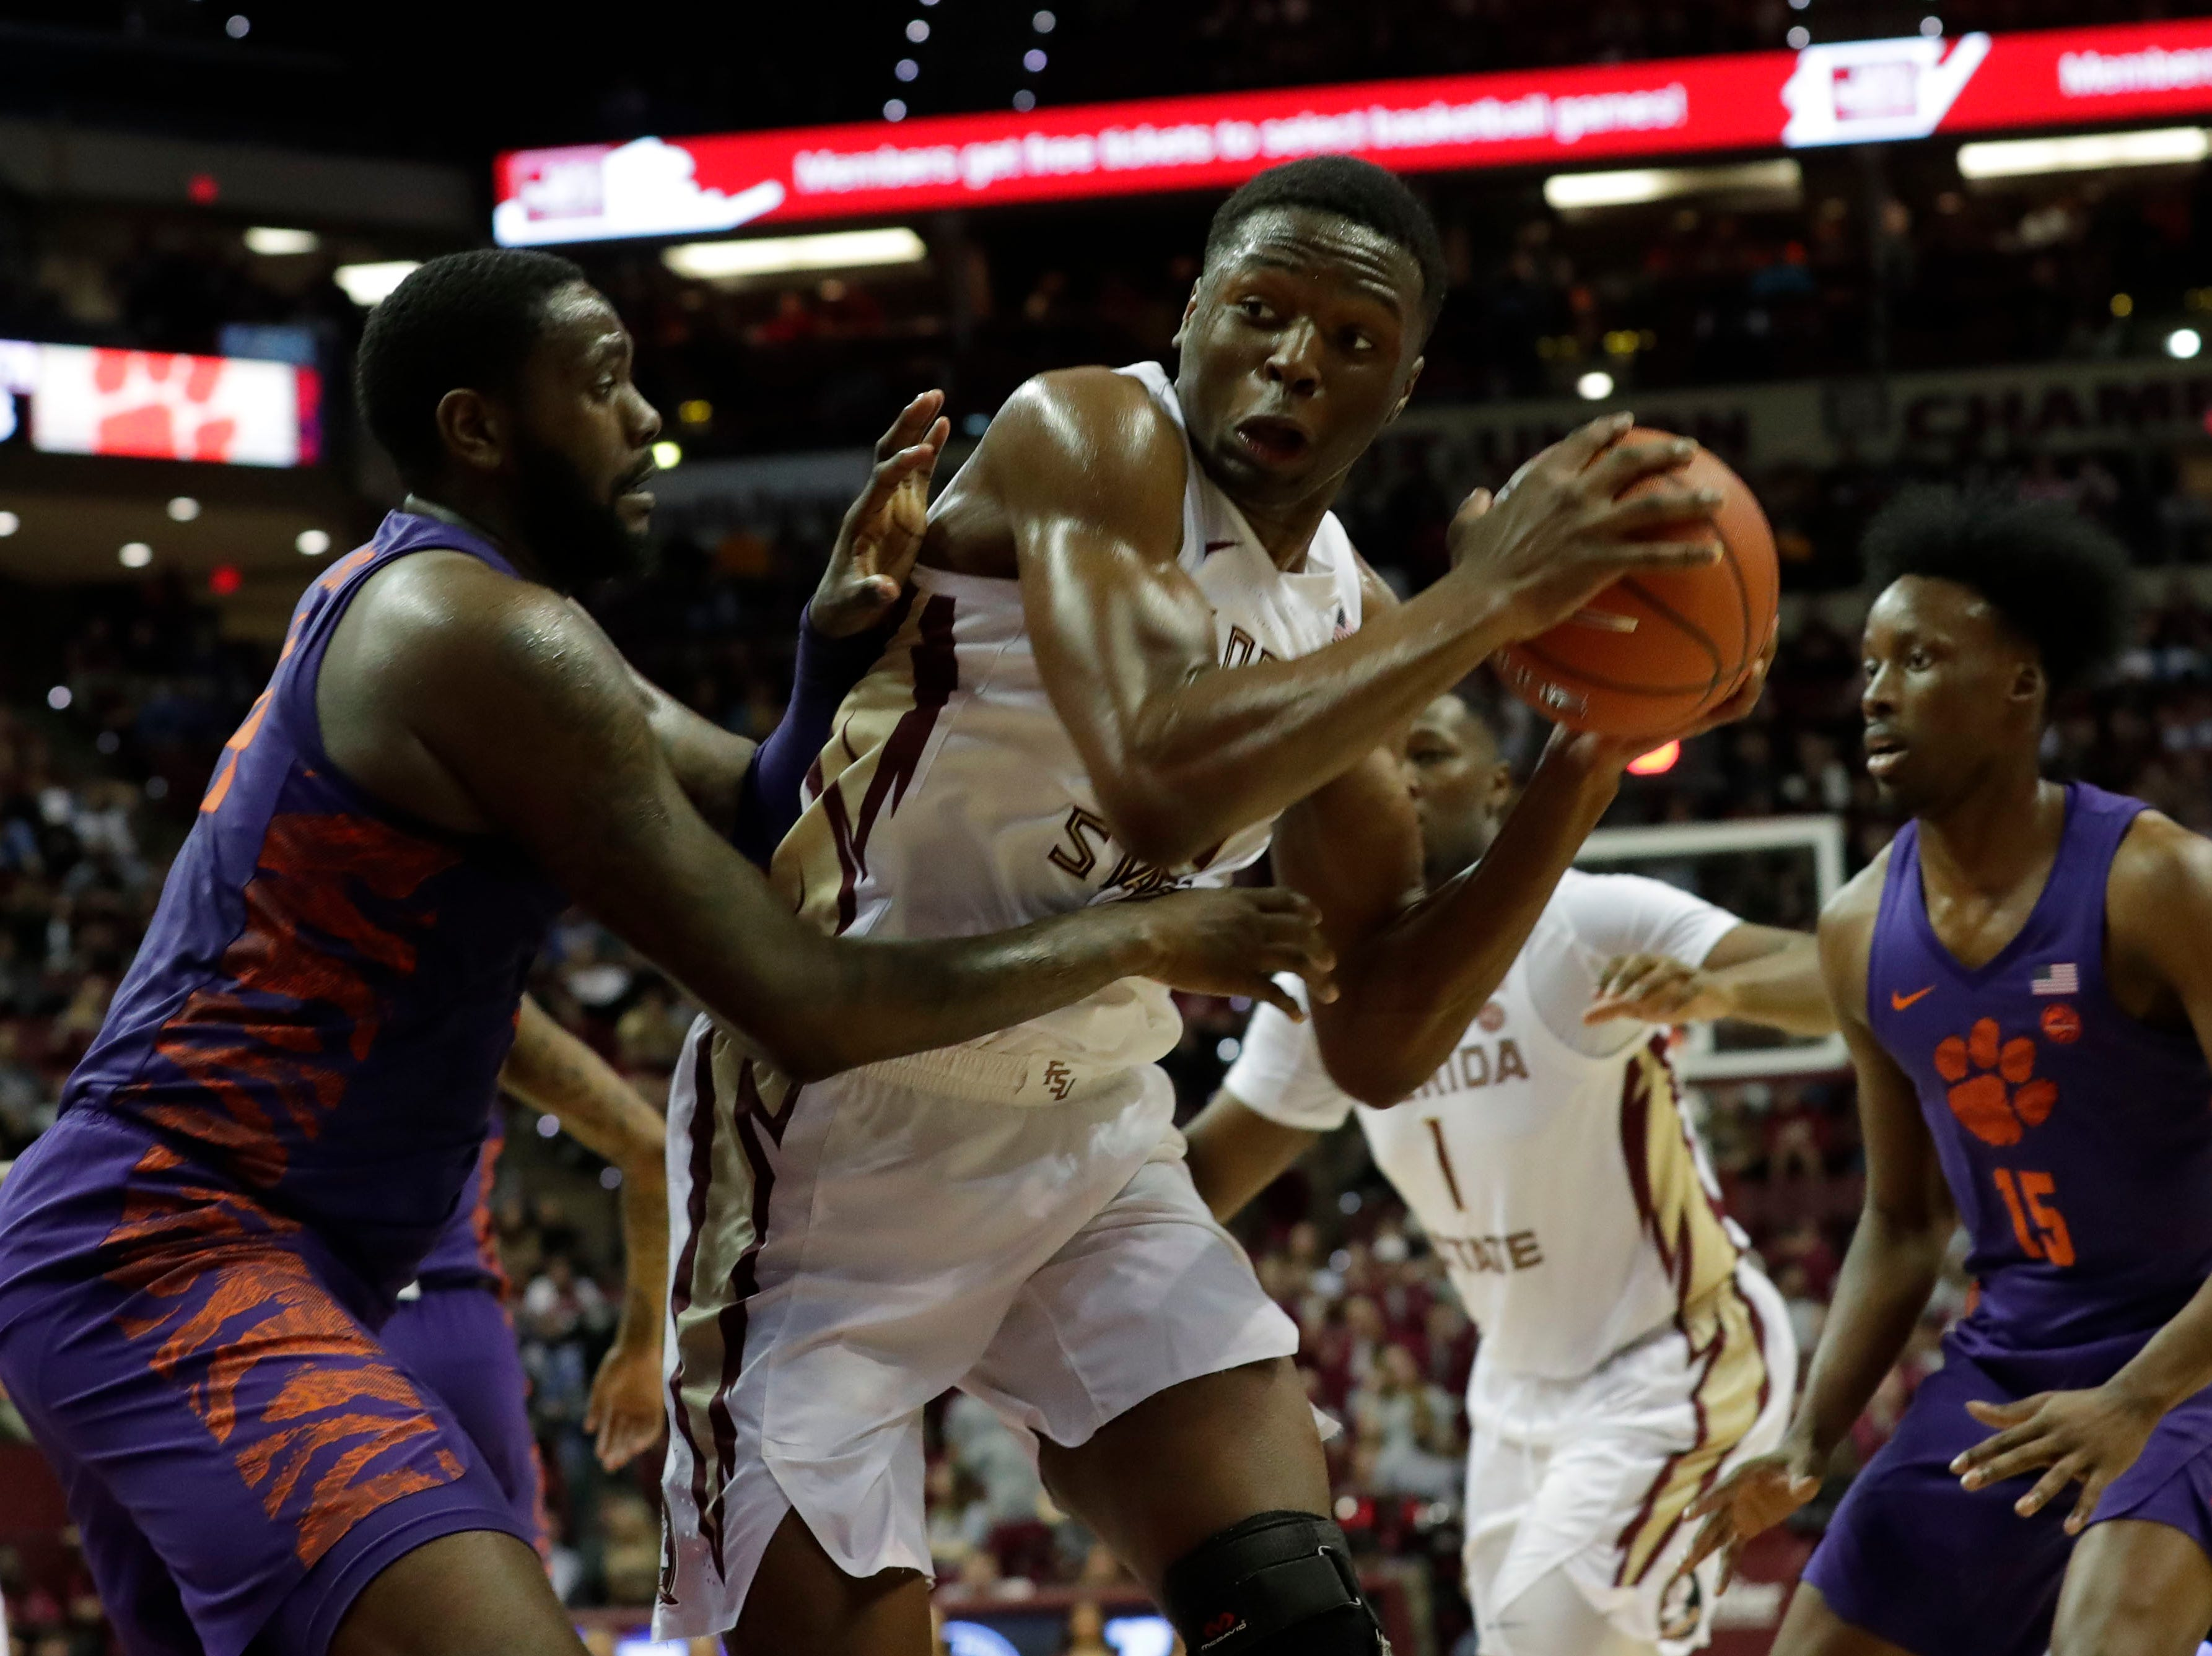 Florida State Seminoles forward Mfiondu Kabengele (25) fights a defender as he tries to shoot for two. The Florida State Seminoles face off against the Clemson Tigers at the Tucker Civic Center, Tuesday, Jan. 22, 2019.